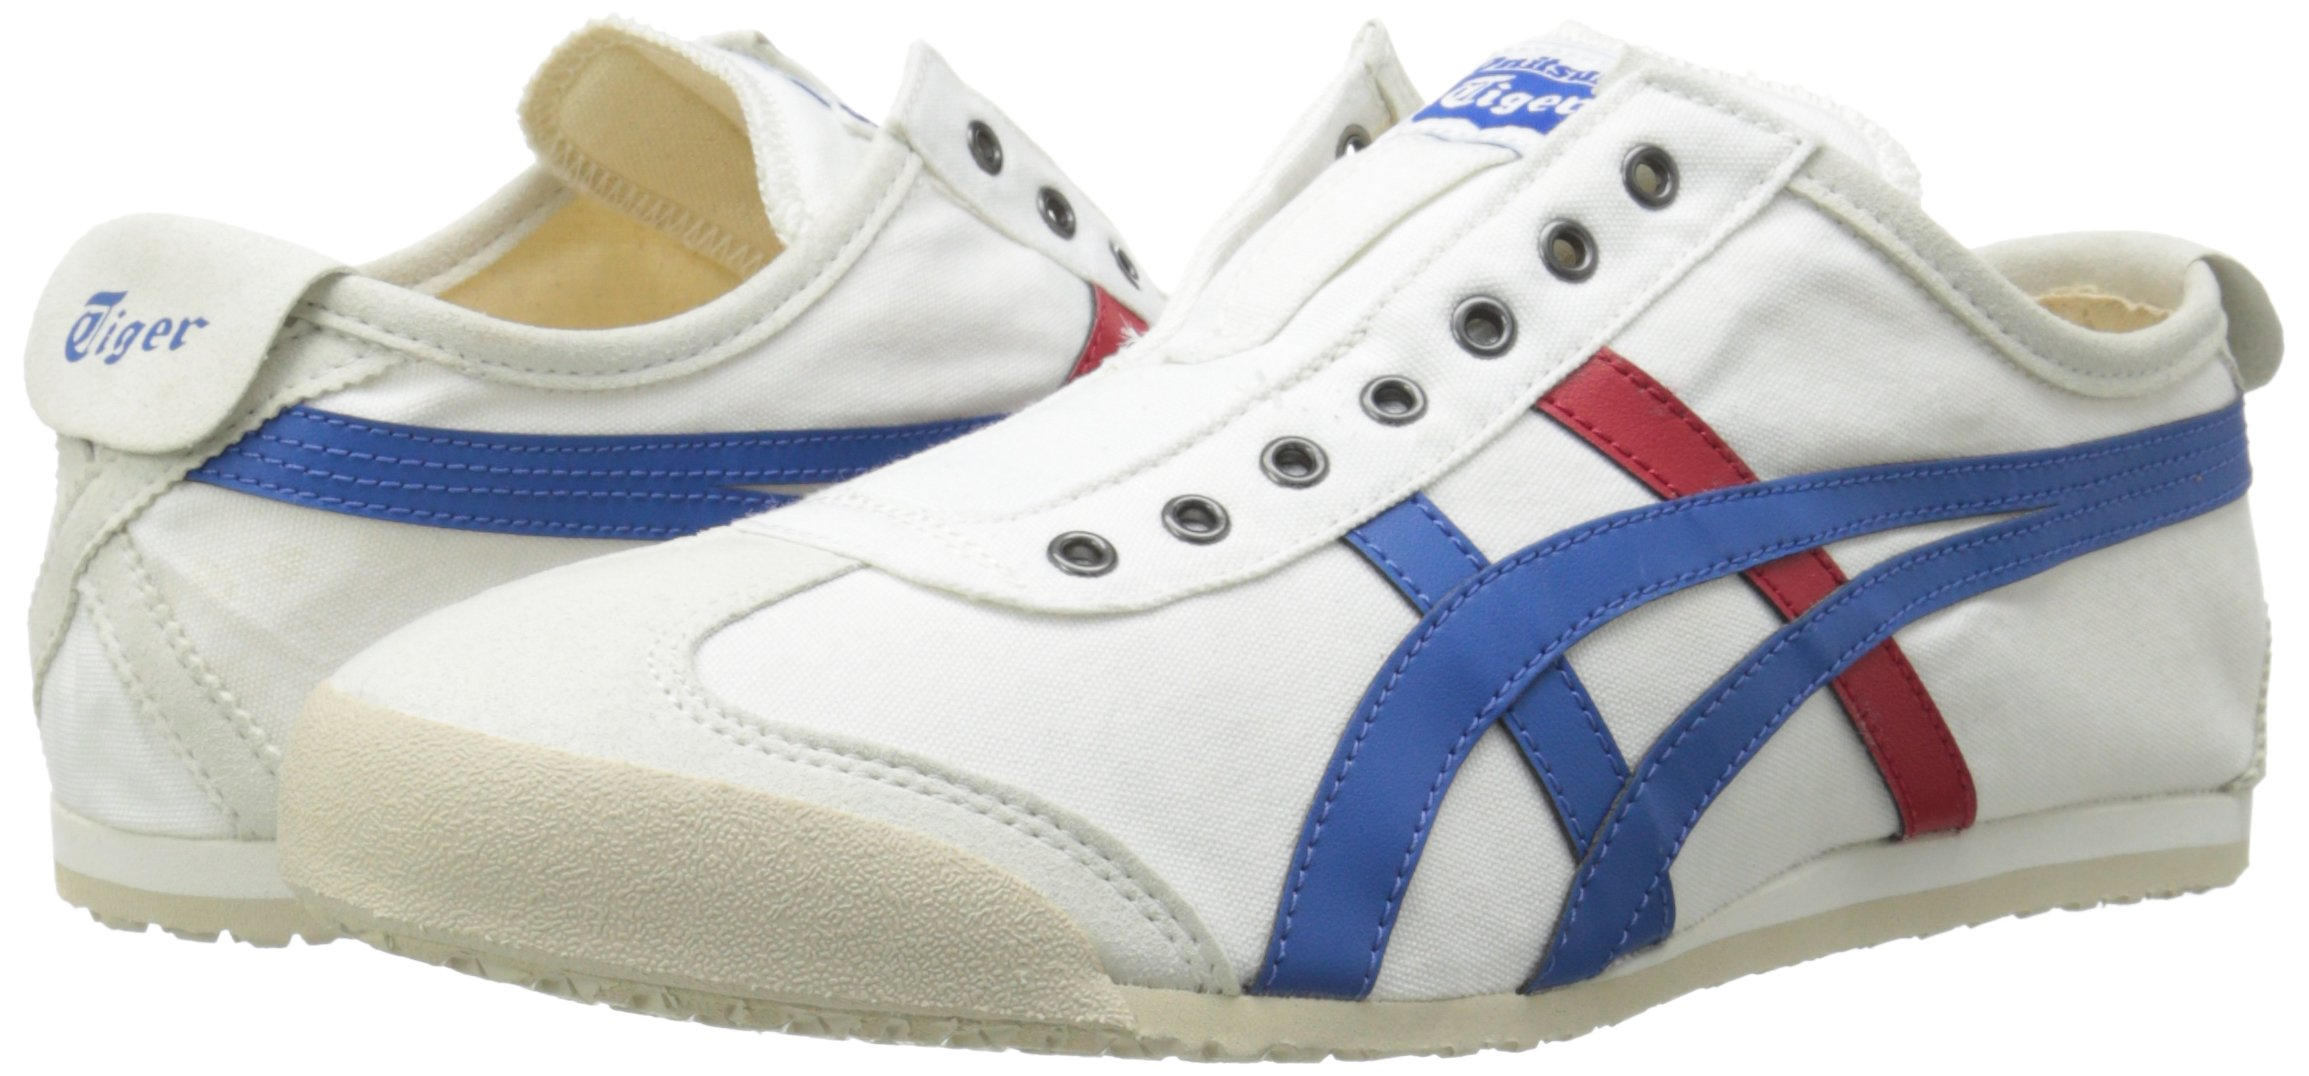 Onitsuka Tiger Unisex Mexico 66 Slip-on Shoes D3K0N, White/Tricolor, 9.5 M US by Onitsuka Tiger (Image #6)